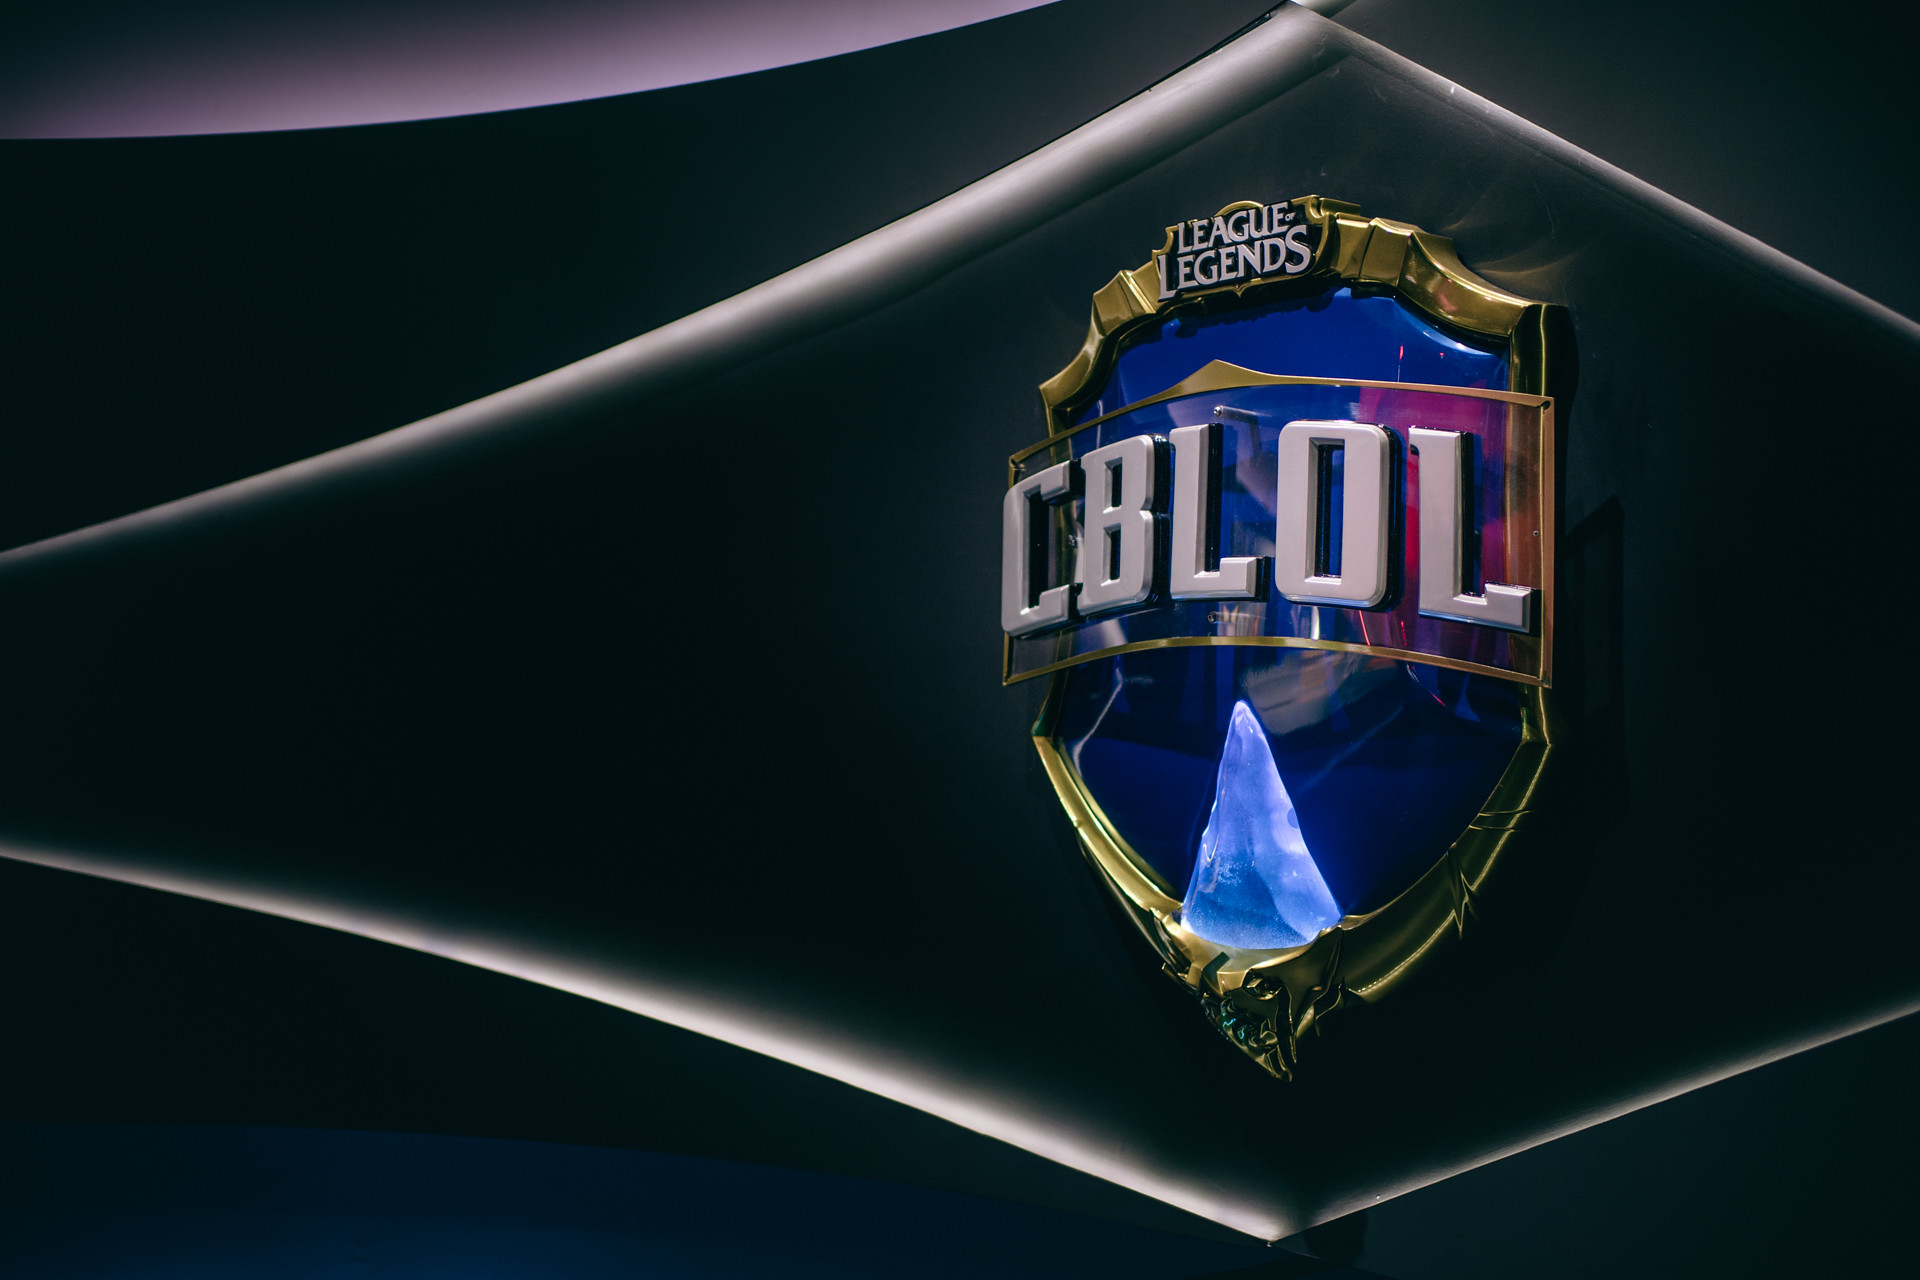 LOGO DO CBLOL